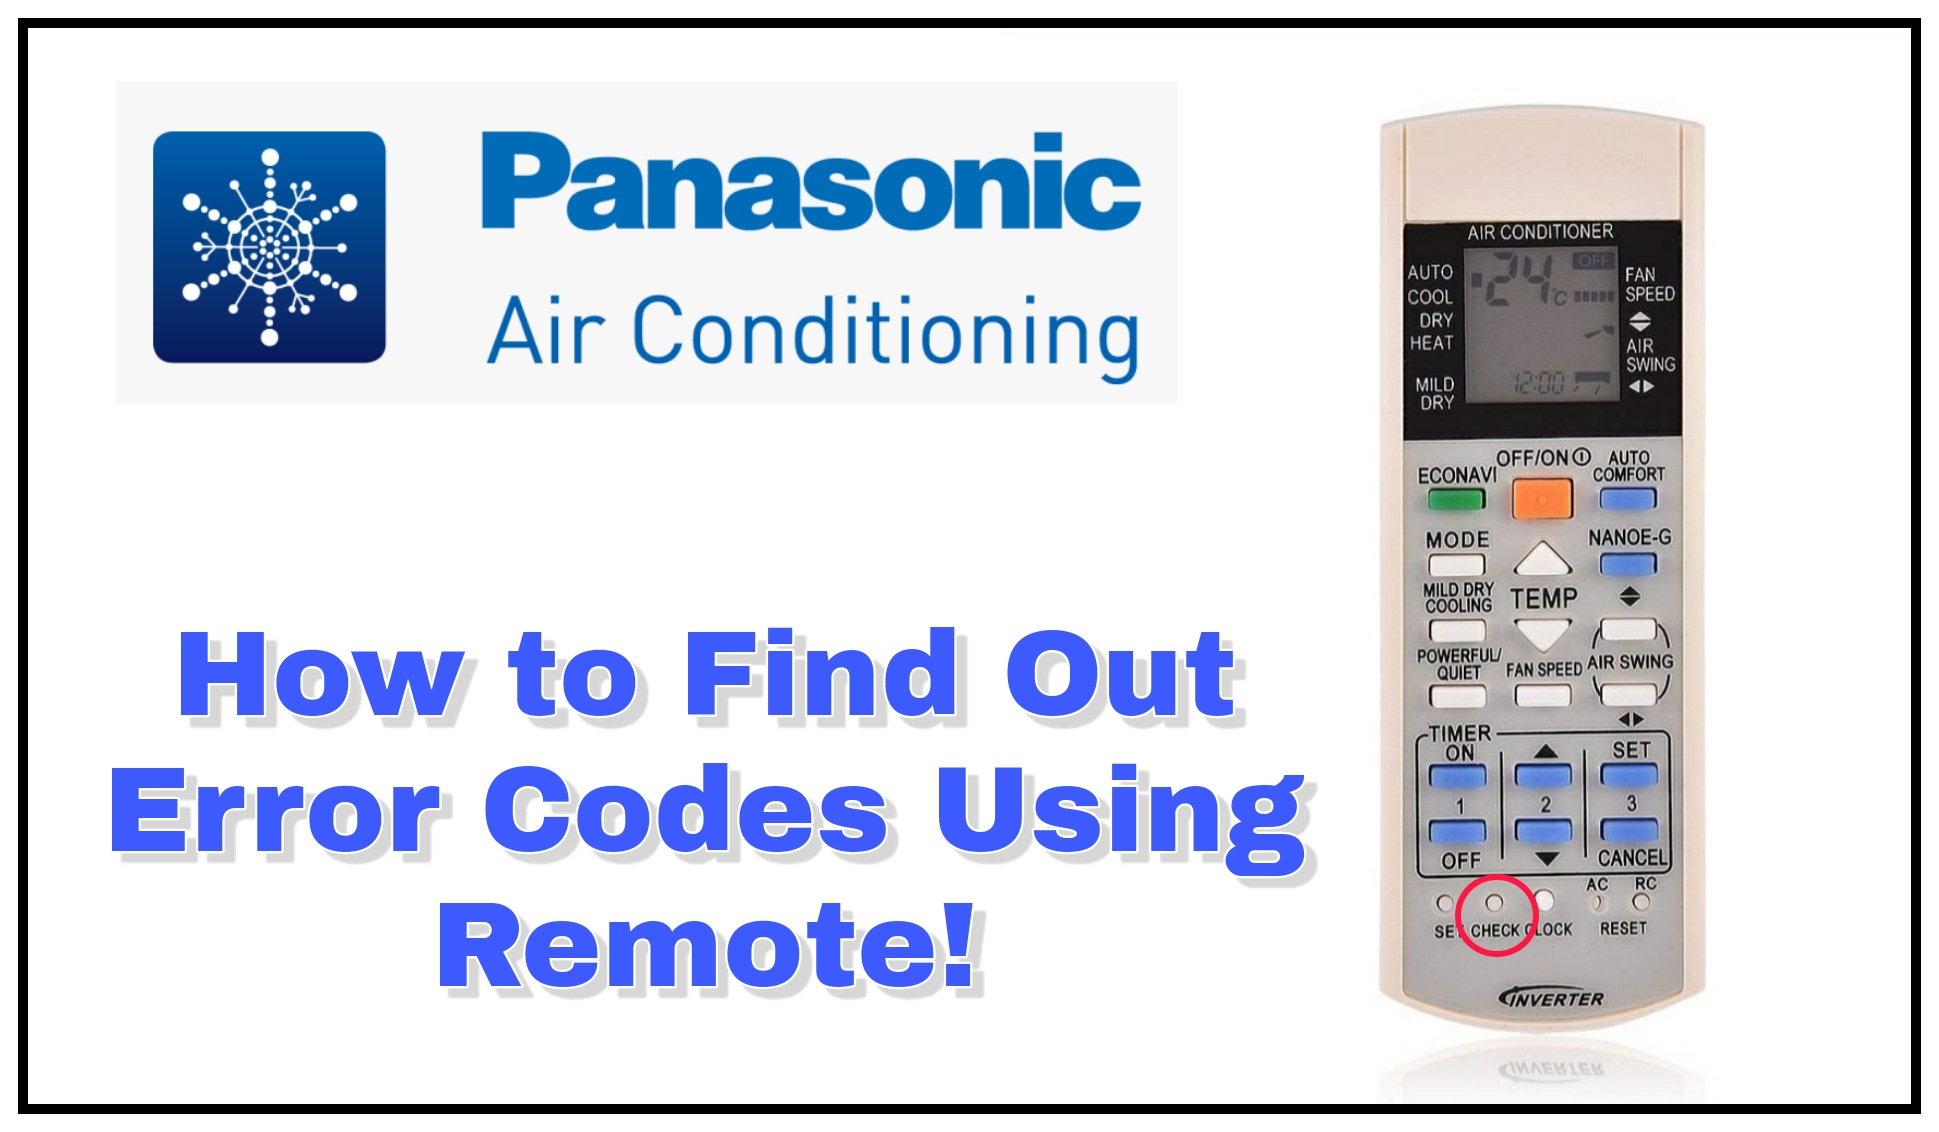 How to Find Panasonic AC Error Codes Using Remote Control